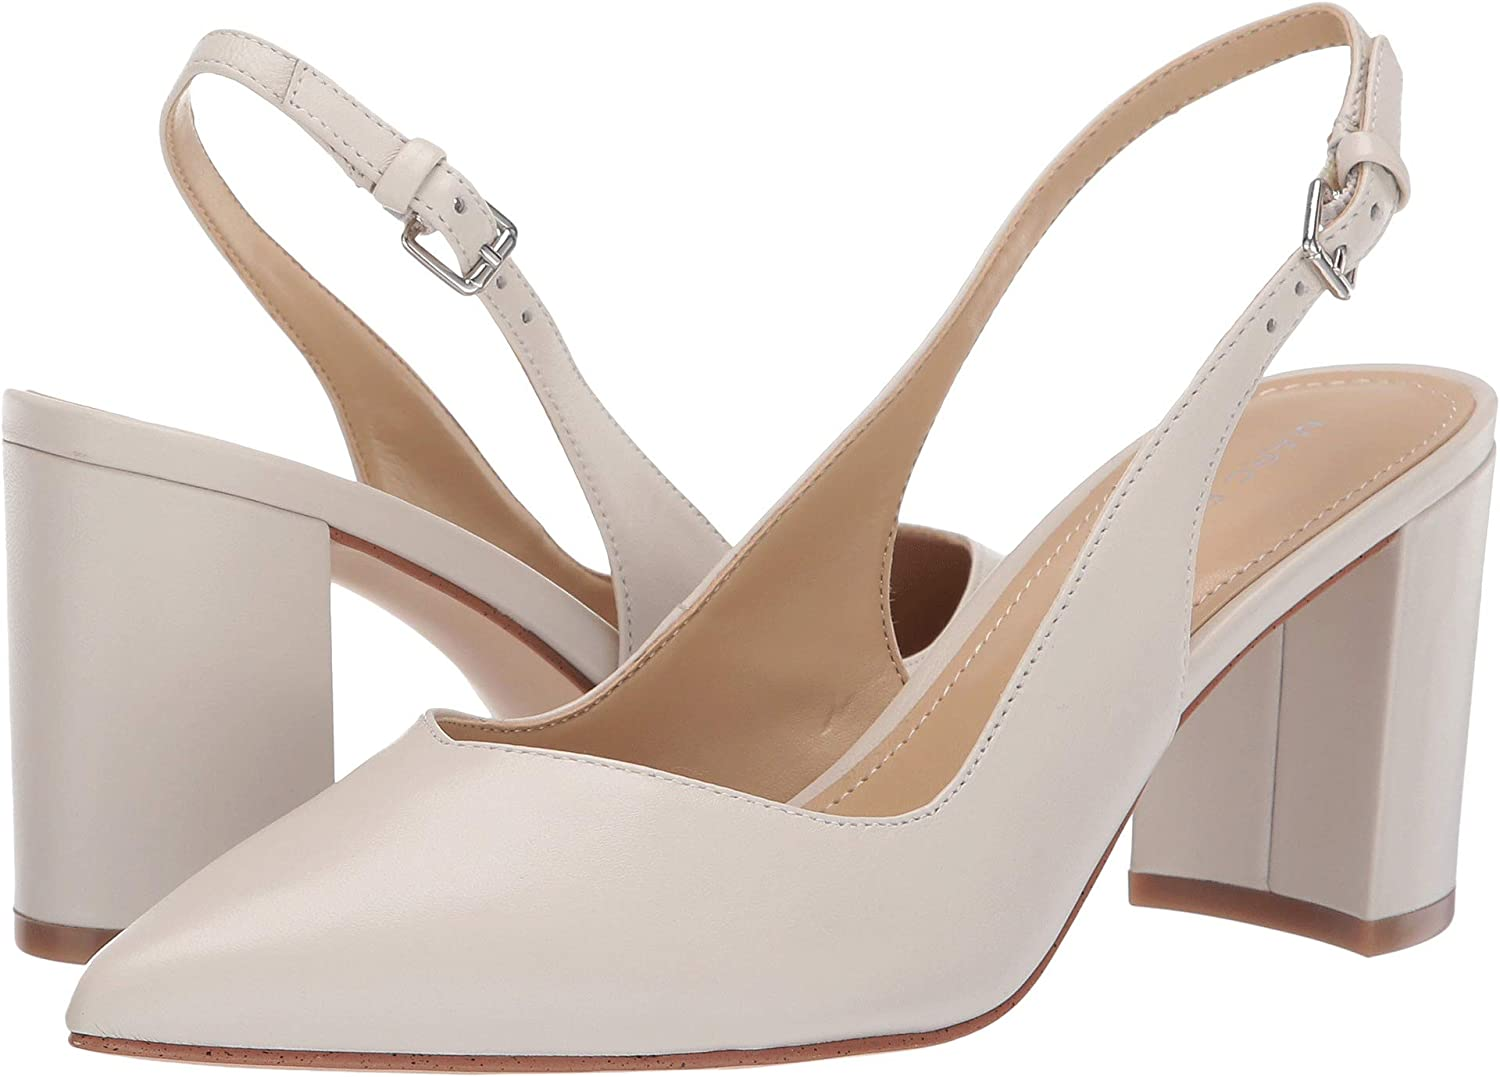 029f096a1d780 Marc Fisher Women's Catling 2 Ivory/White Leather 7.5 M US